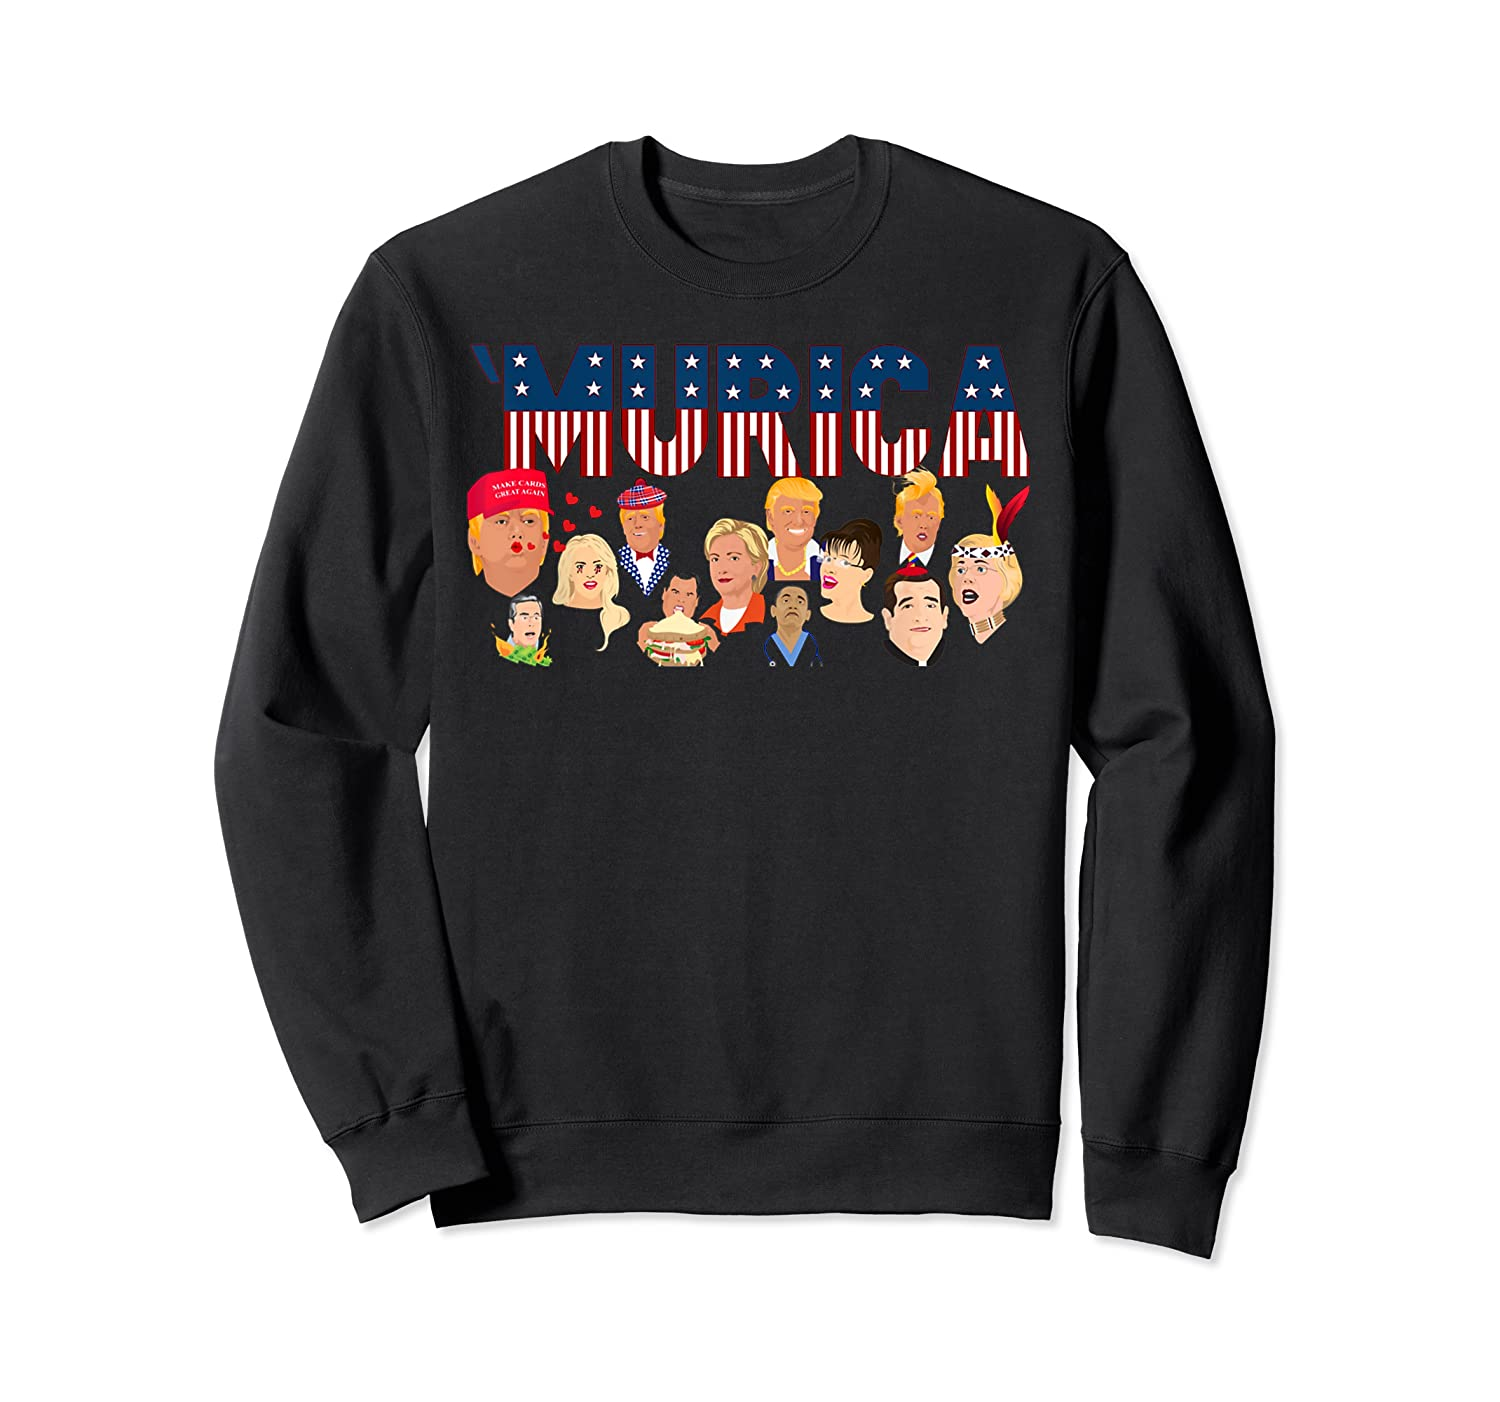 Funny Political Humor Murica Trump Hillary Great Election T Shirt Crewneck Sweater